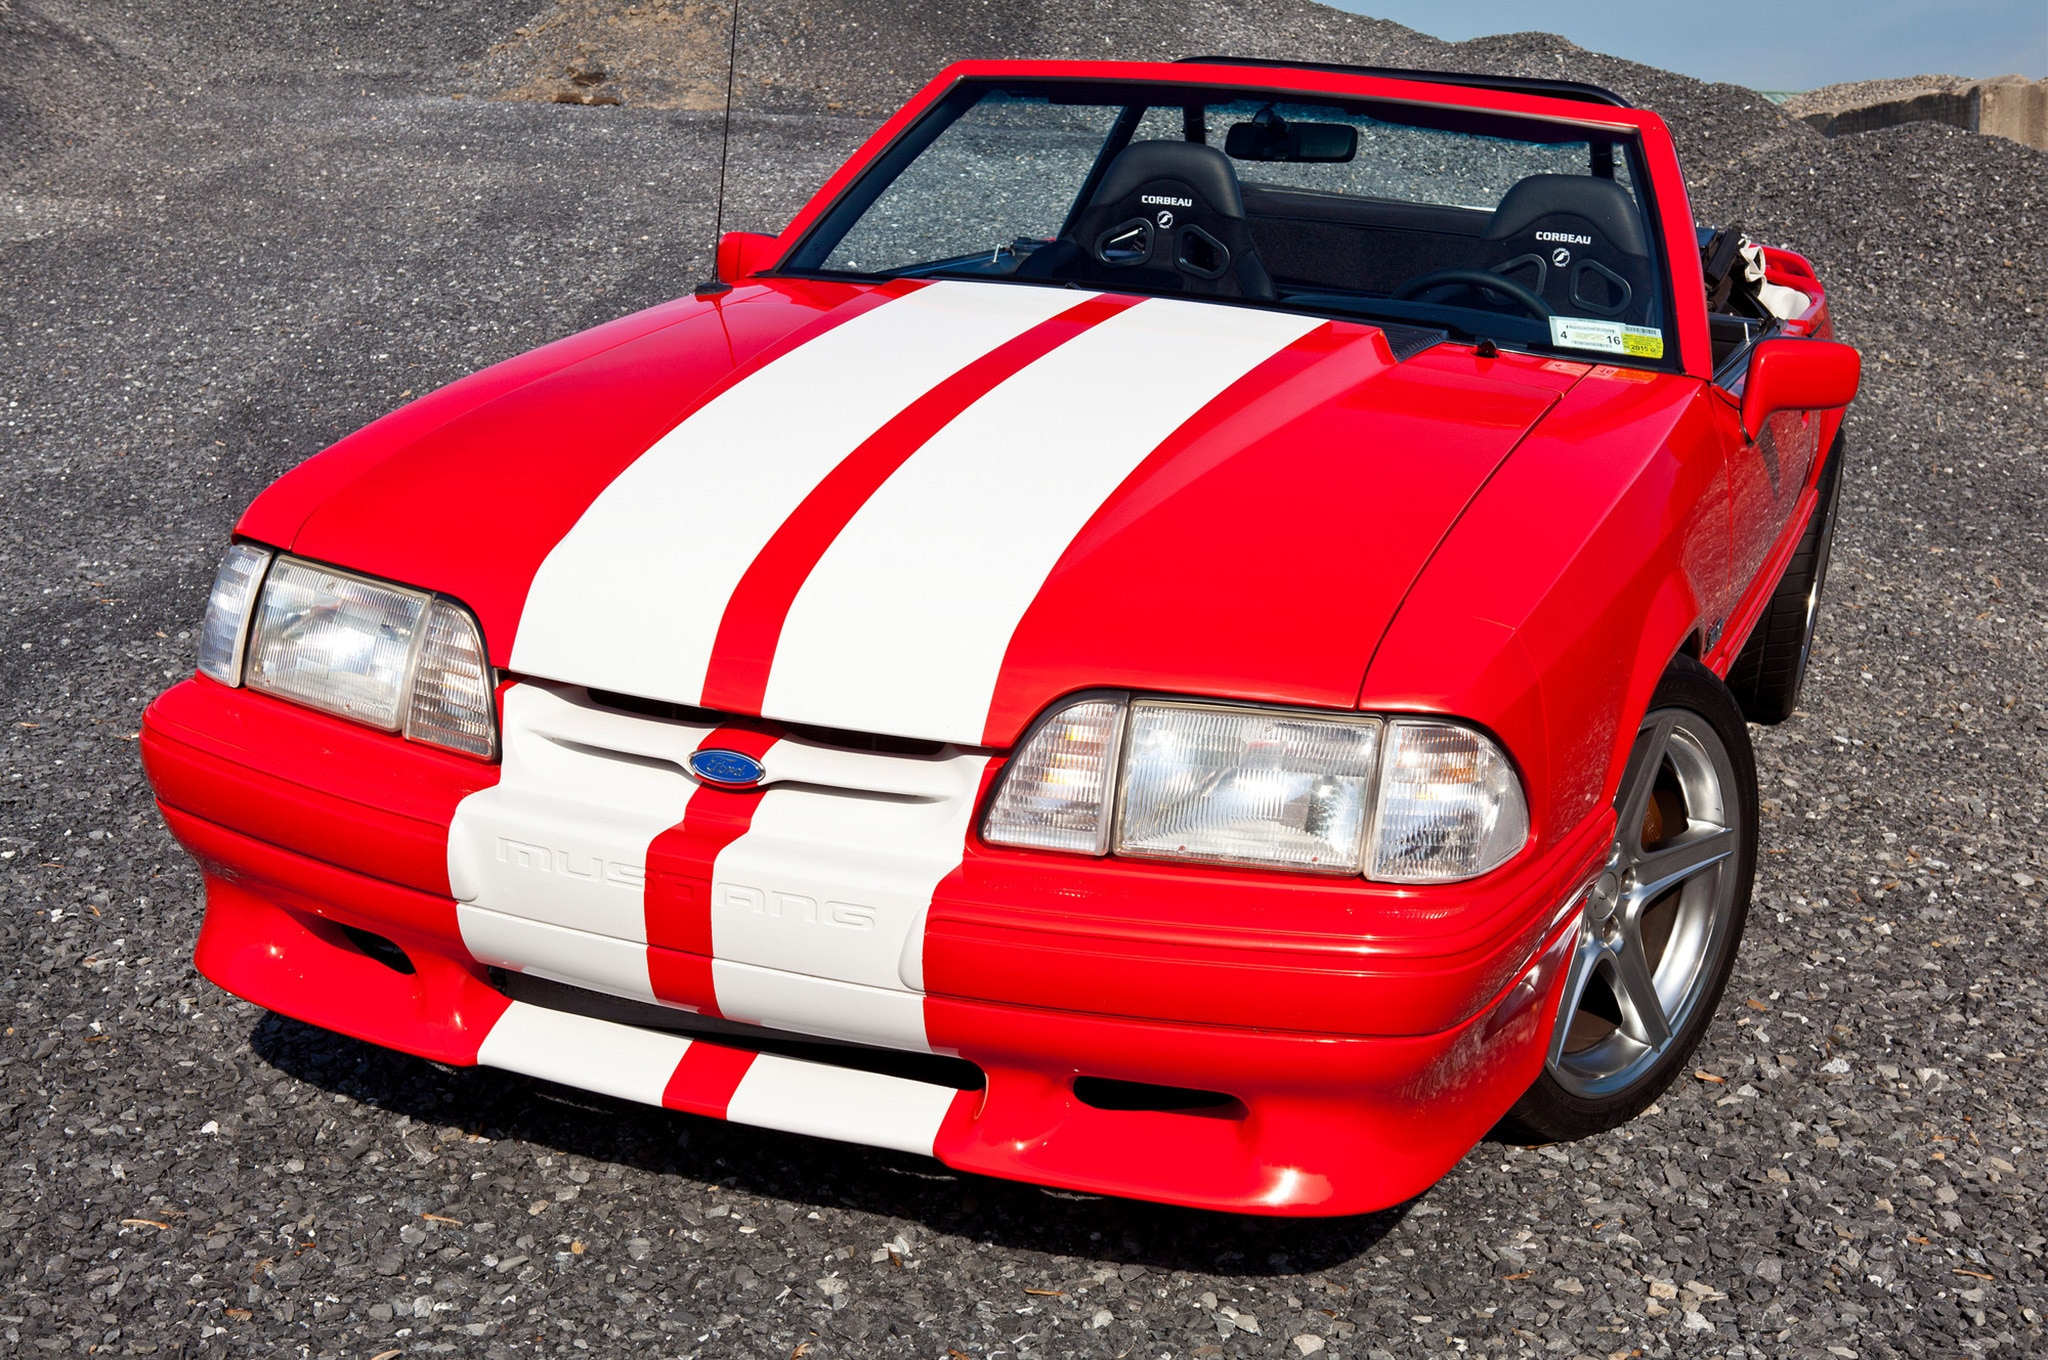 1992 Ford Mustang Convertible Red White Stripes Egeland 23 Headlights